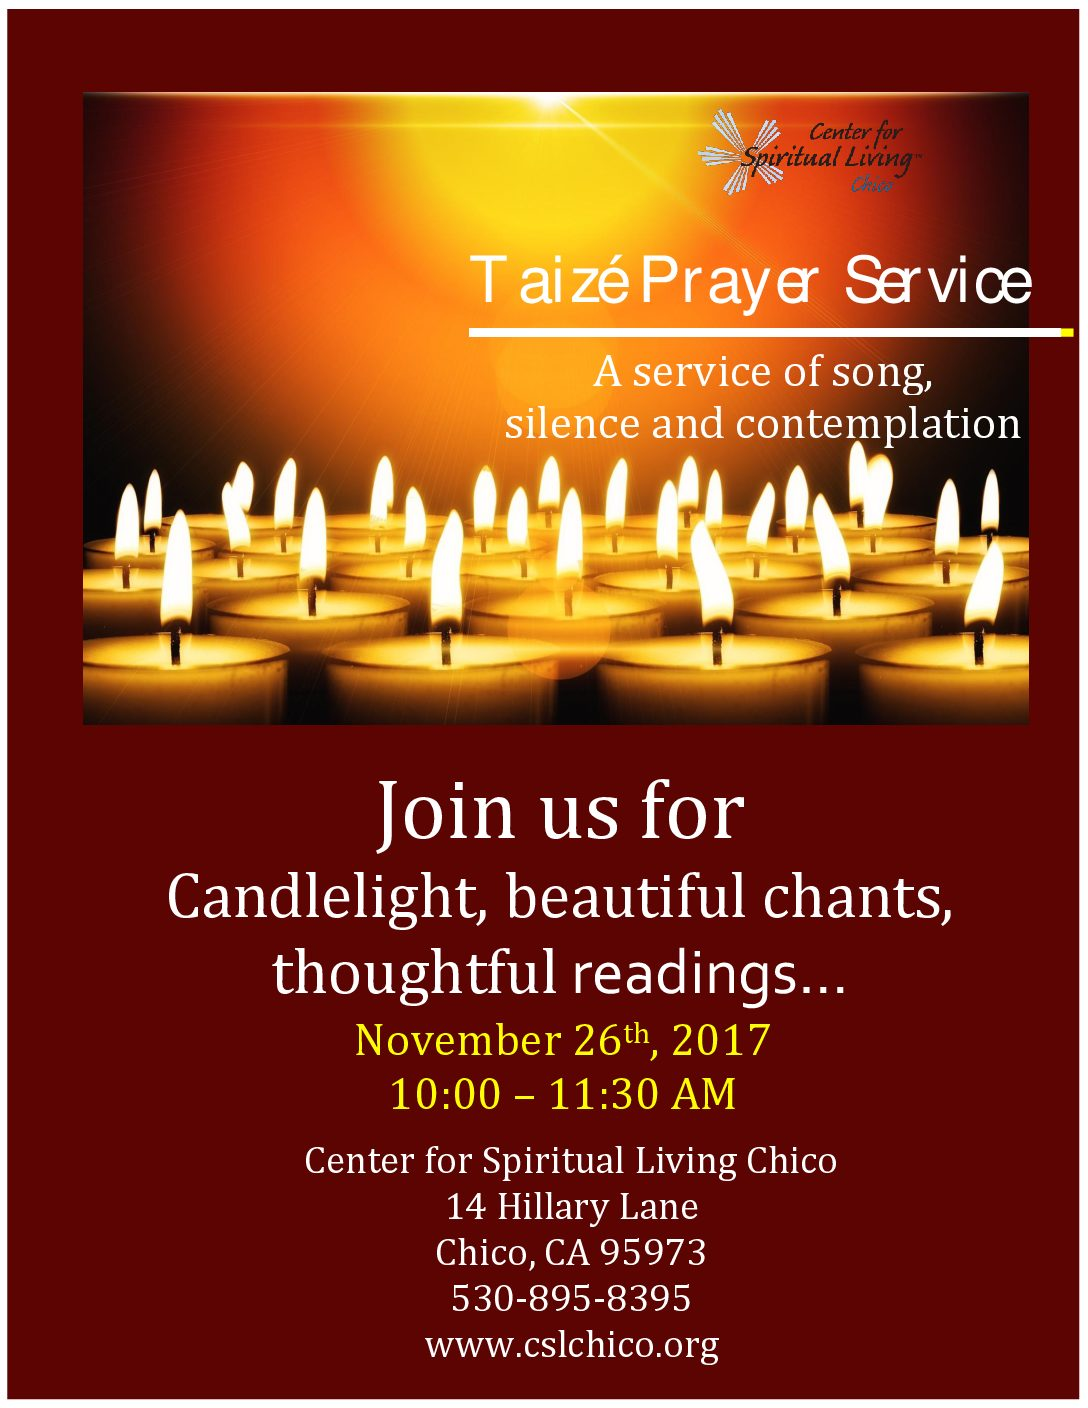 Taize Prayer Service Center For Spiritual Living Chico